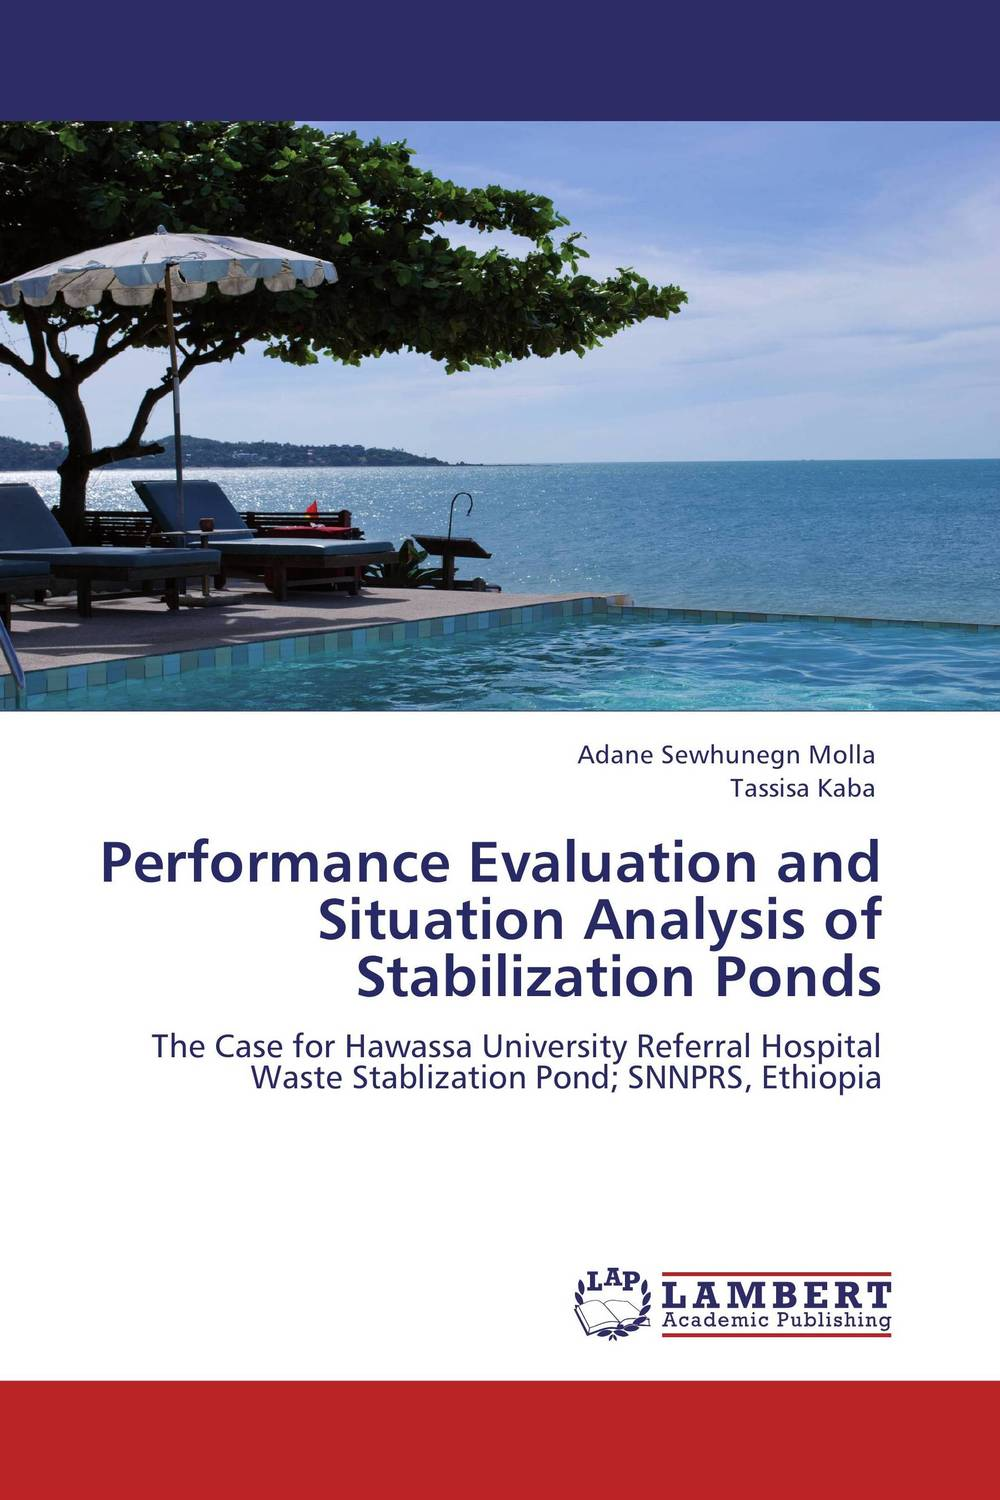 Performance Evaluation and Situation Analysis of Stabilization Ponds design and evaluation of microemulsion gel system of nadifloxacin